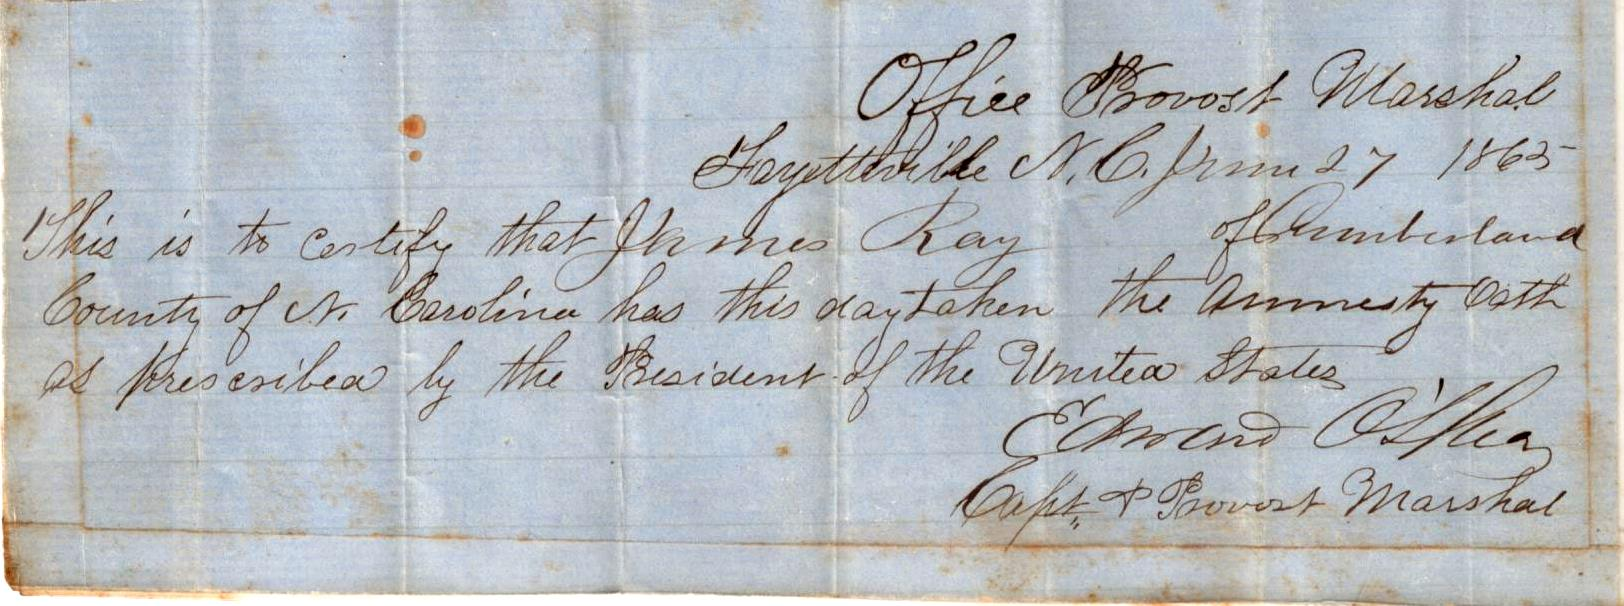 """A rectangular slip of paper upon which is written """"Office Provost Marshal Fayetteville NC June 27 1863 This is to certify that James Ray of Cumberland County has this day taken the amnesty oath as prescribed by the President of the United States. Edward O'Shea Capt & Provost Marshal"""